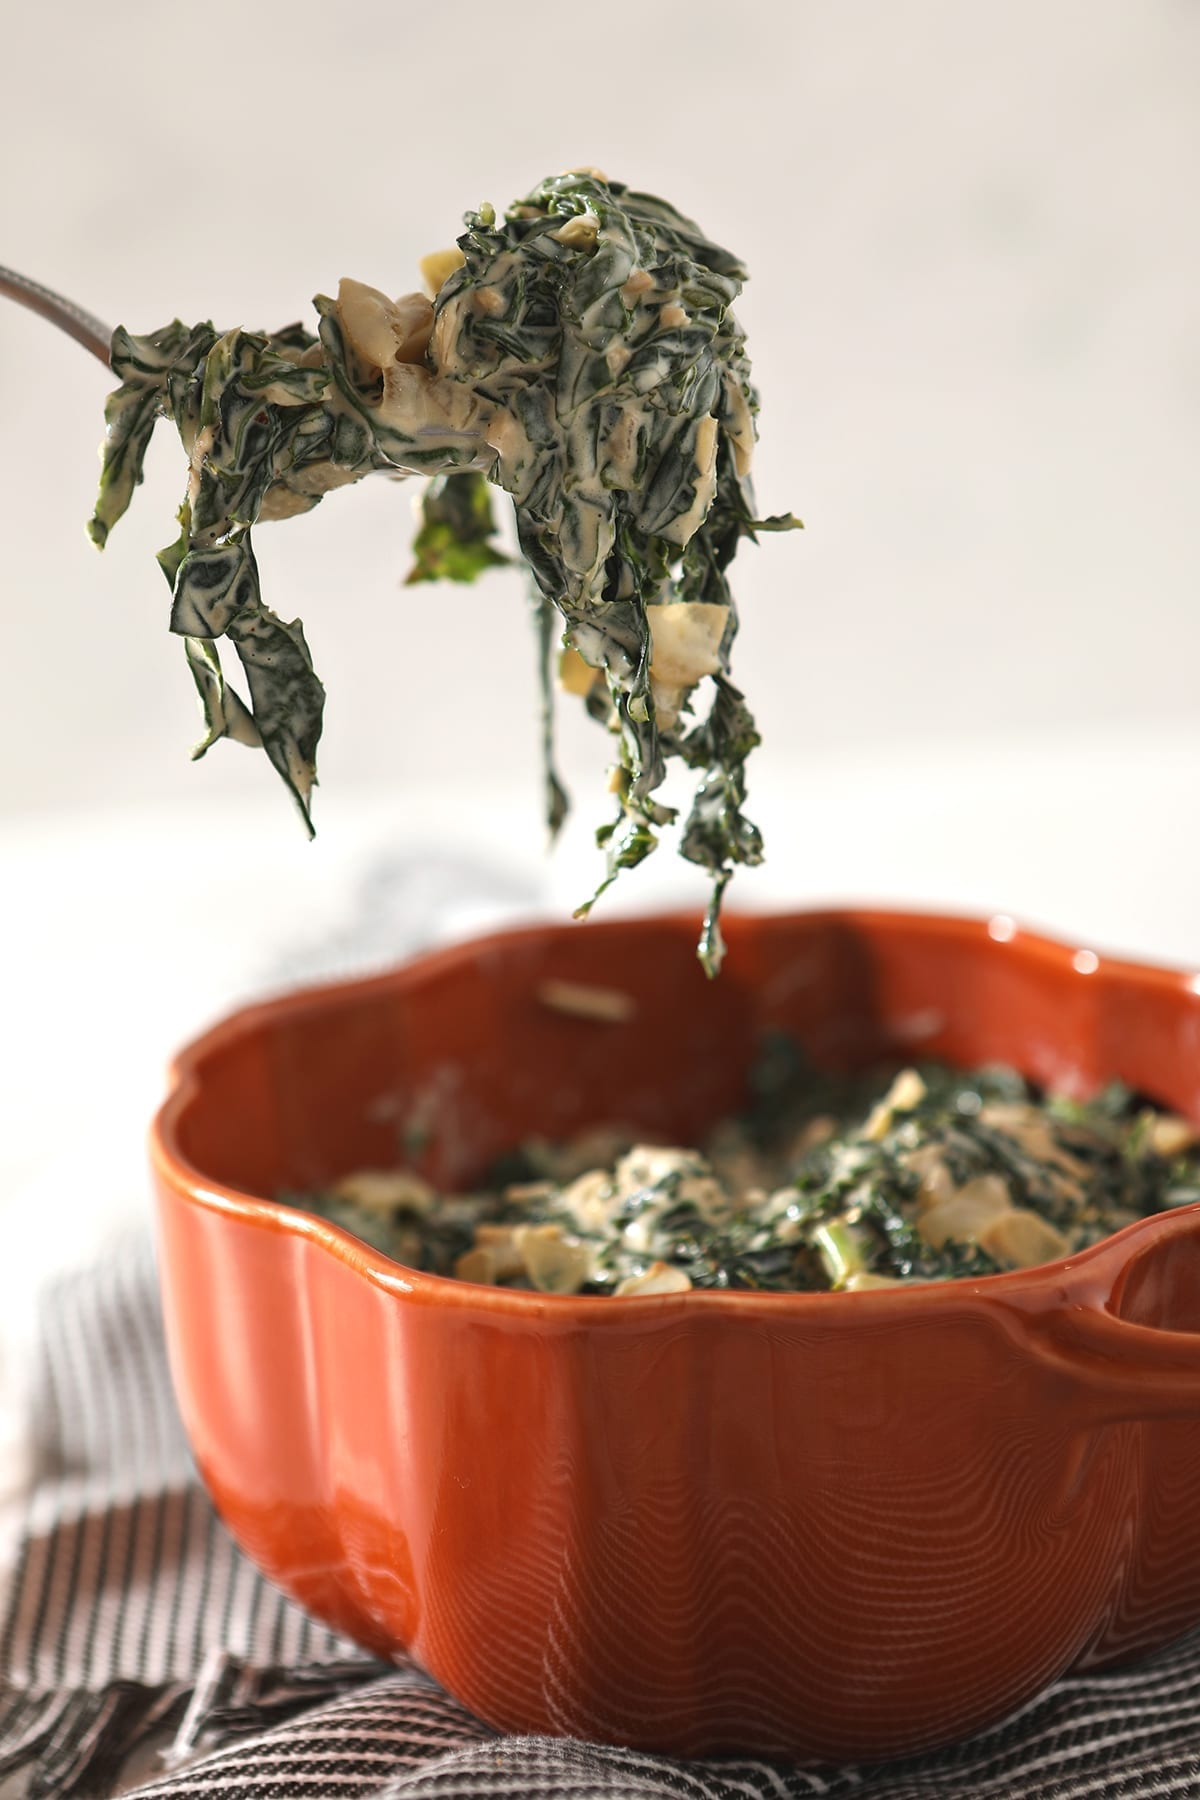 A spoon lifts a spoonful of Creamy Kale out of an orange serving dish that sits on a gray striped towel